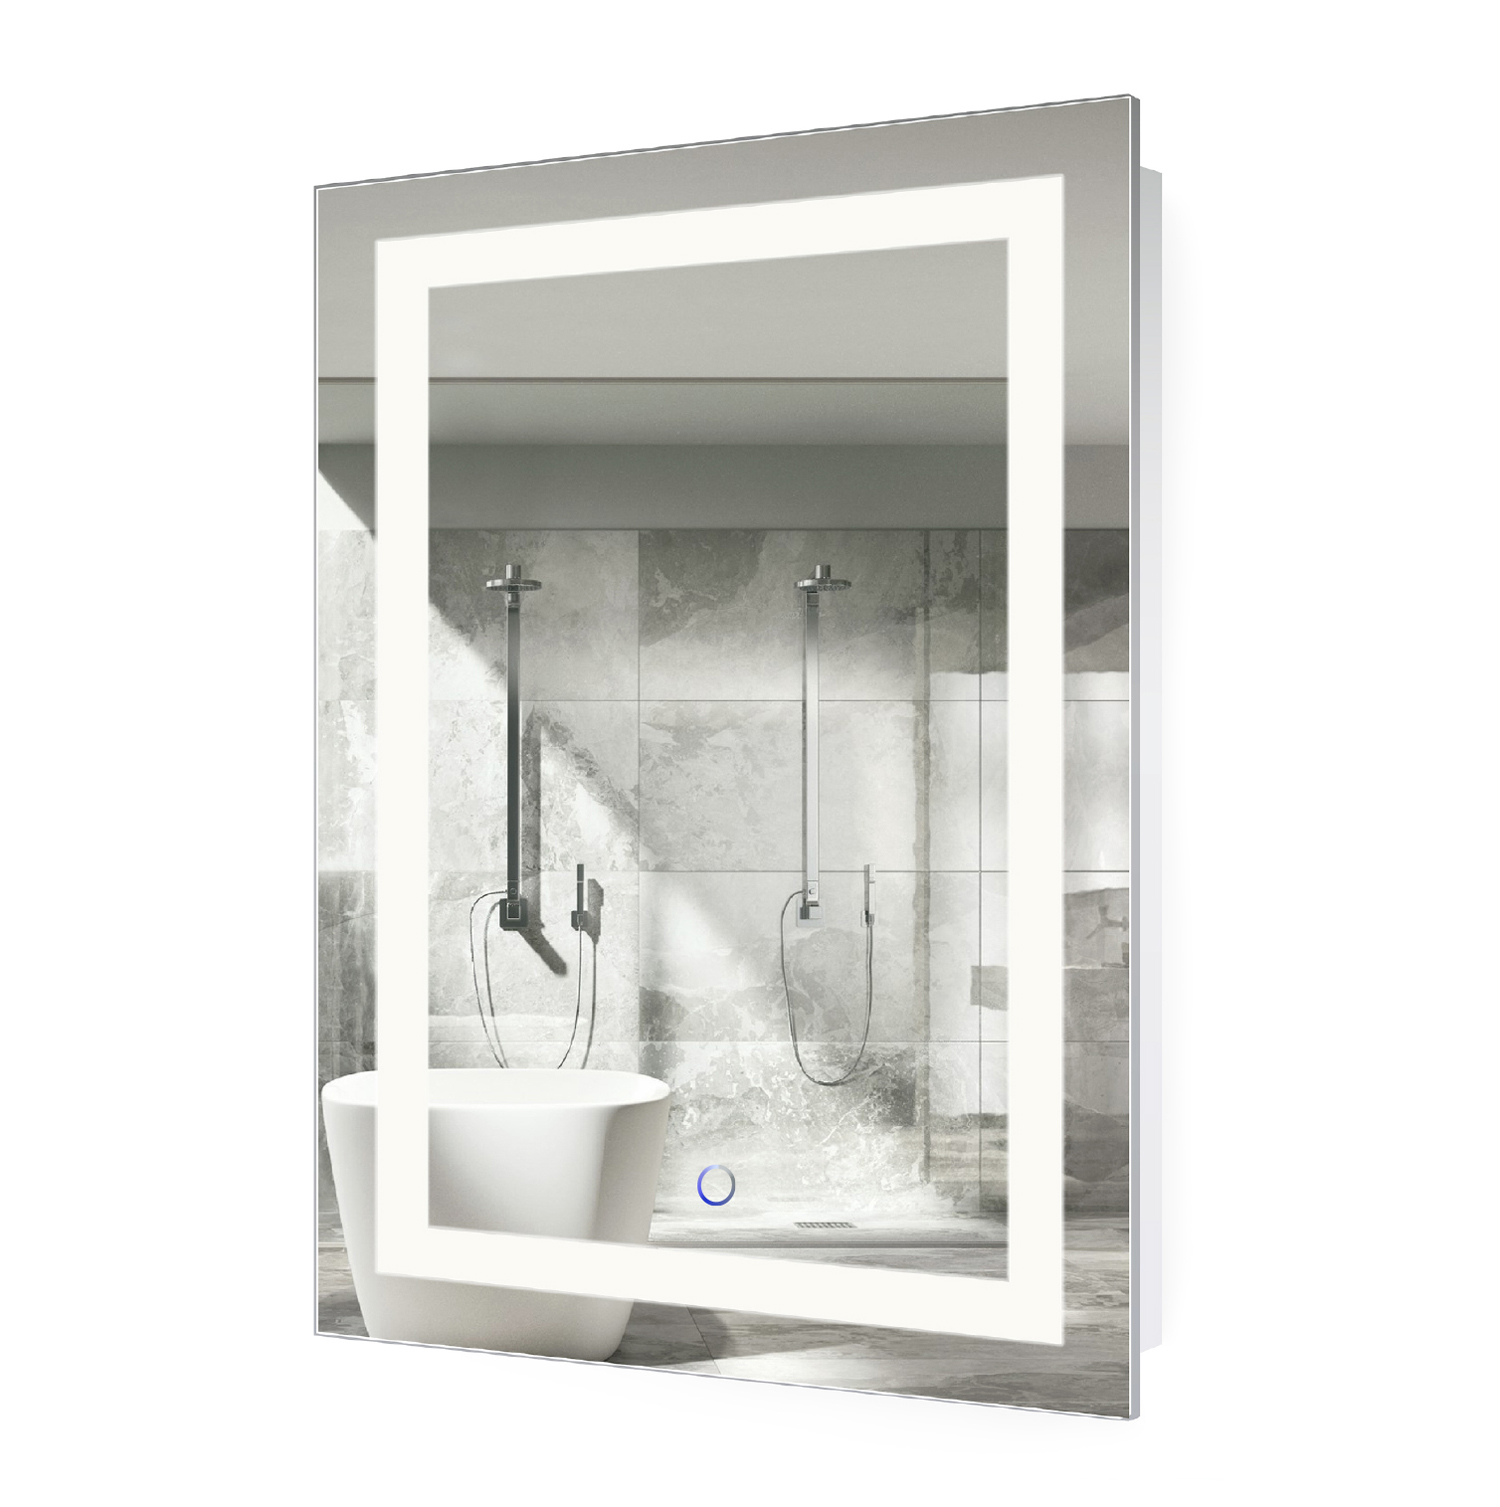 led lighted 24 x36 bathroom mirror with dimmer defogger